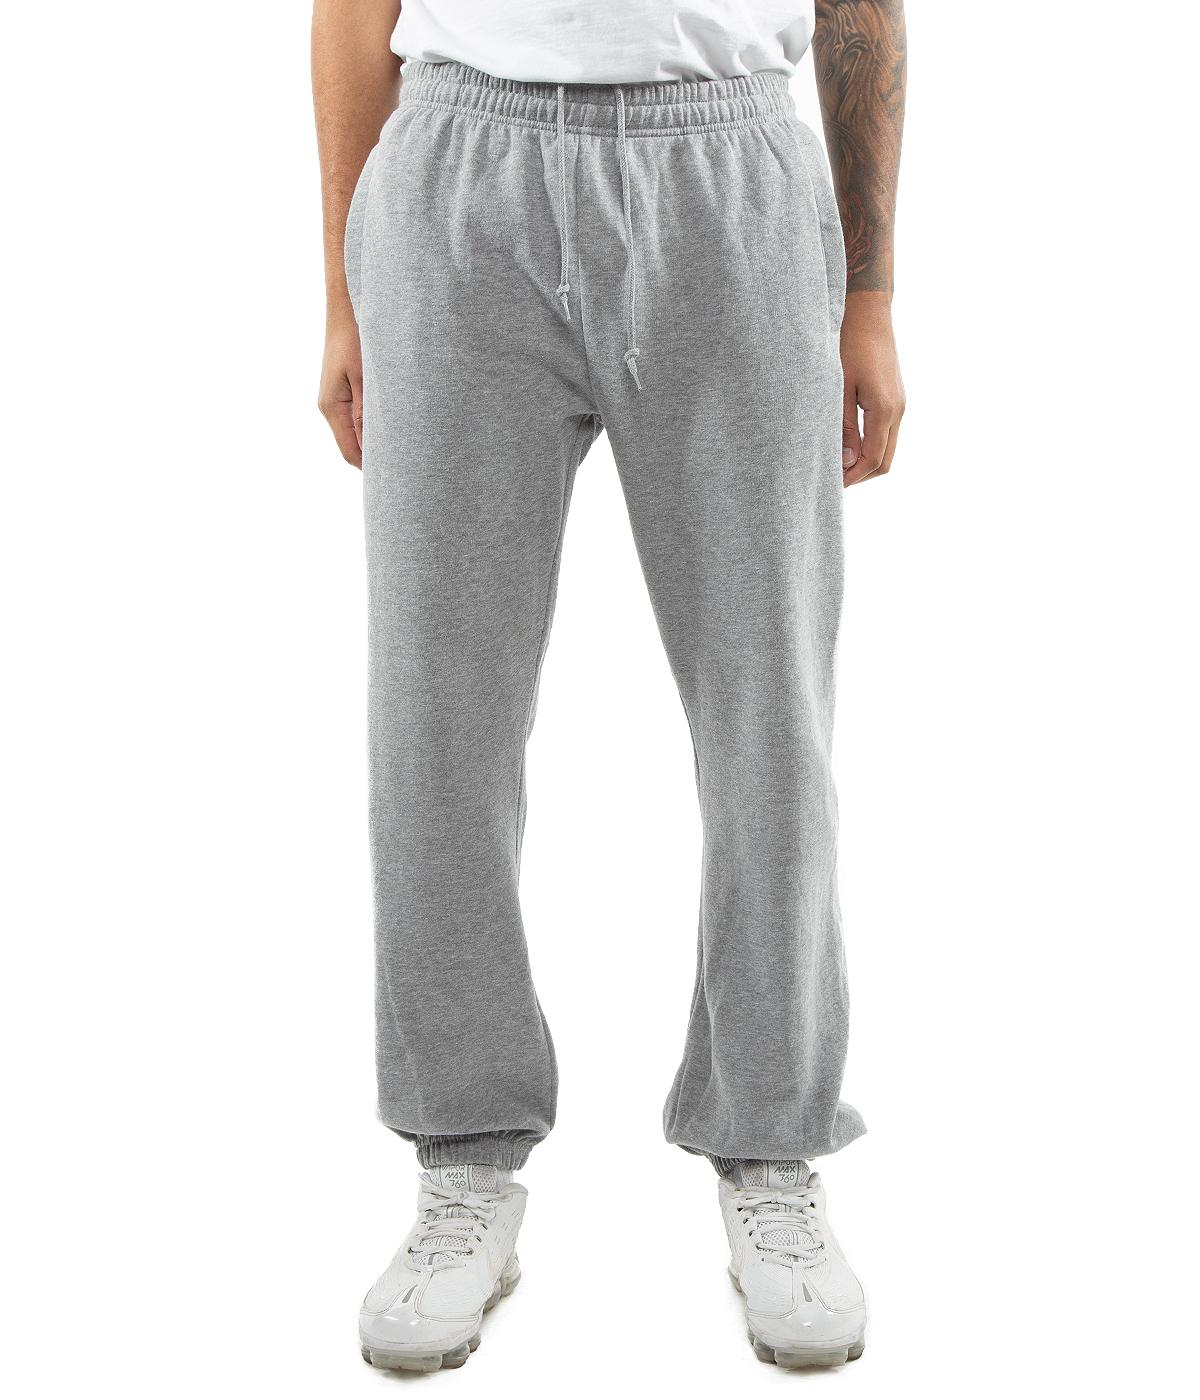 Elastic Bottom Sweatpants | 7.25 oz